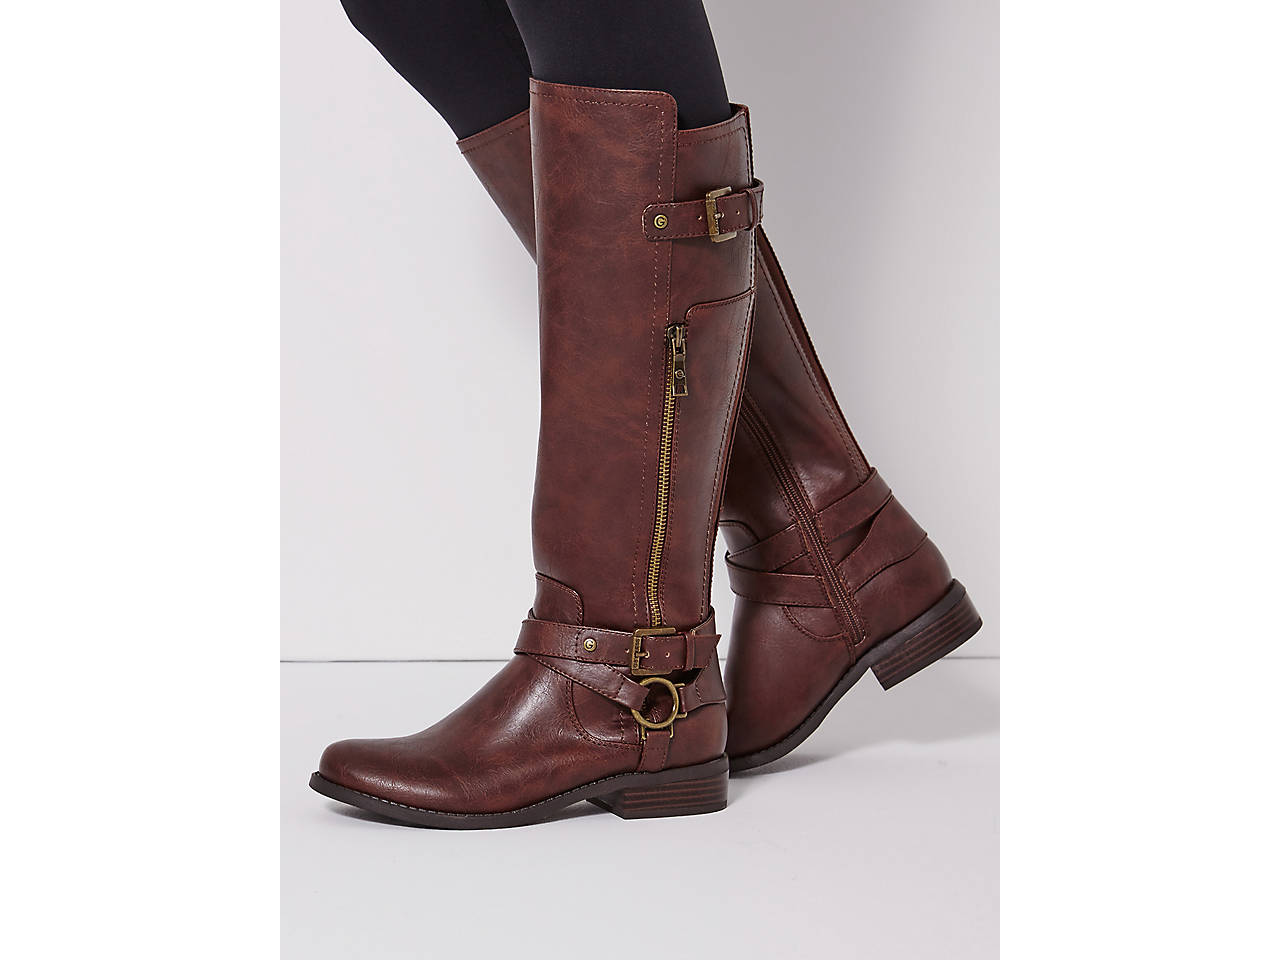 9d33d8678167 G by GUESS Herly Riding Boot Women s Shoes